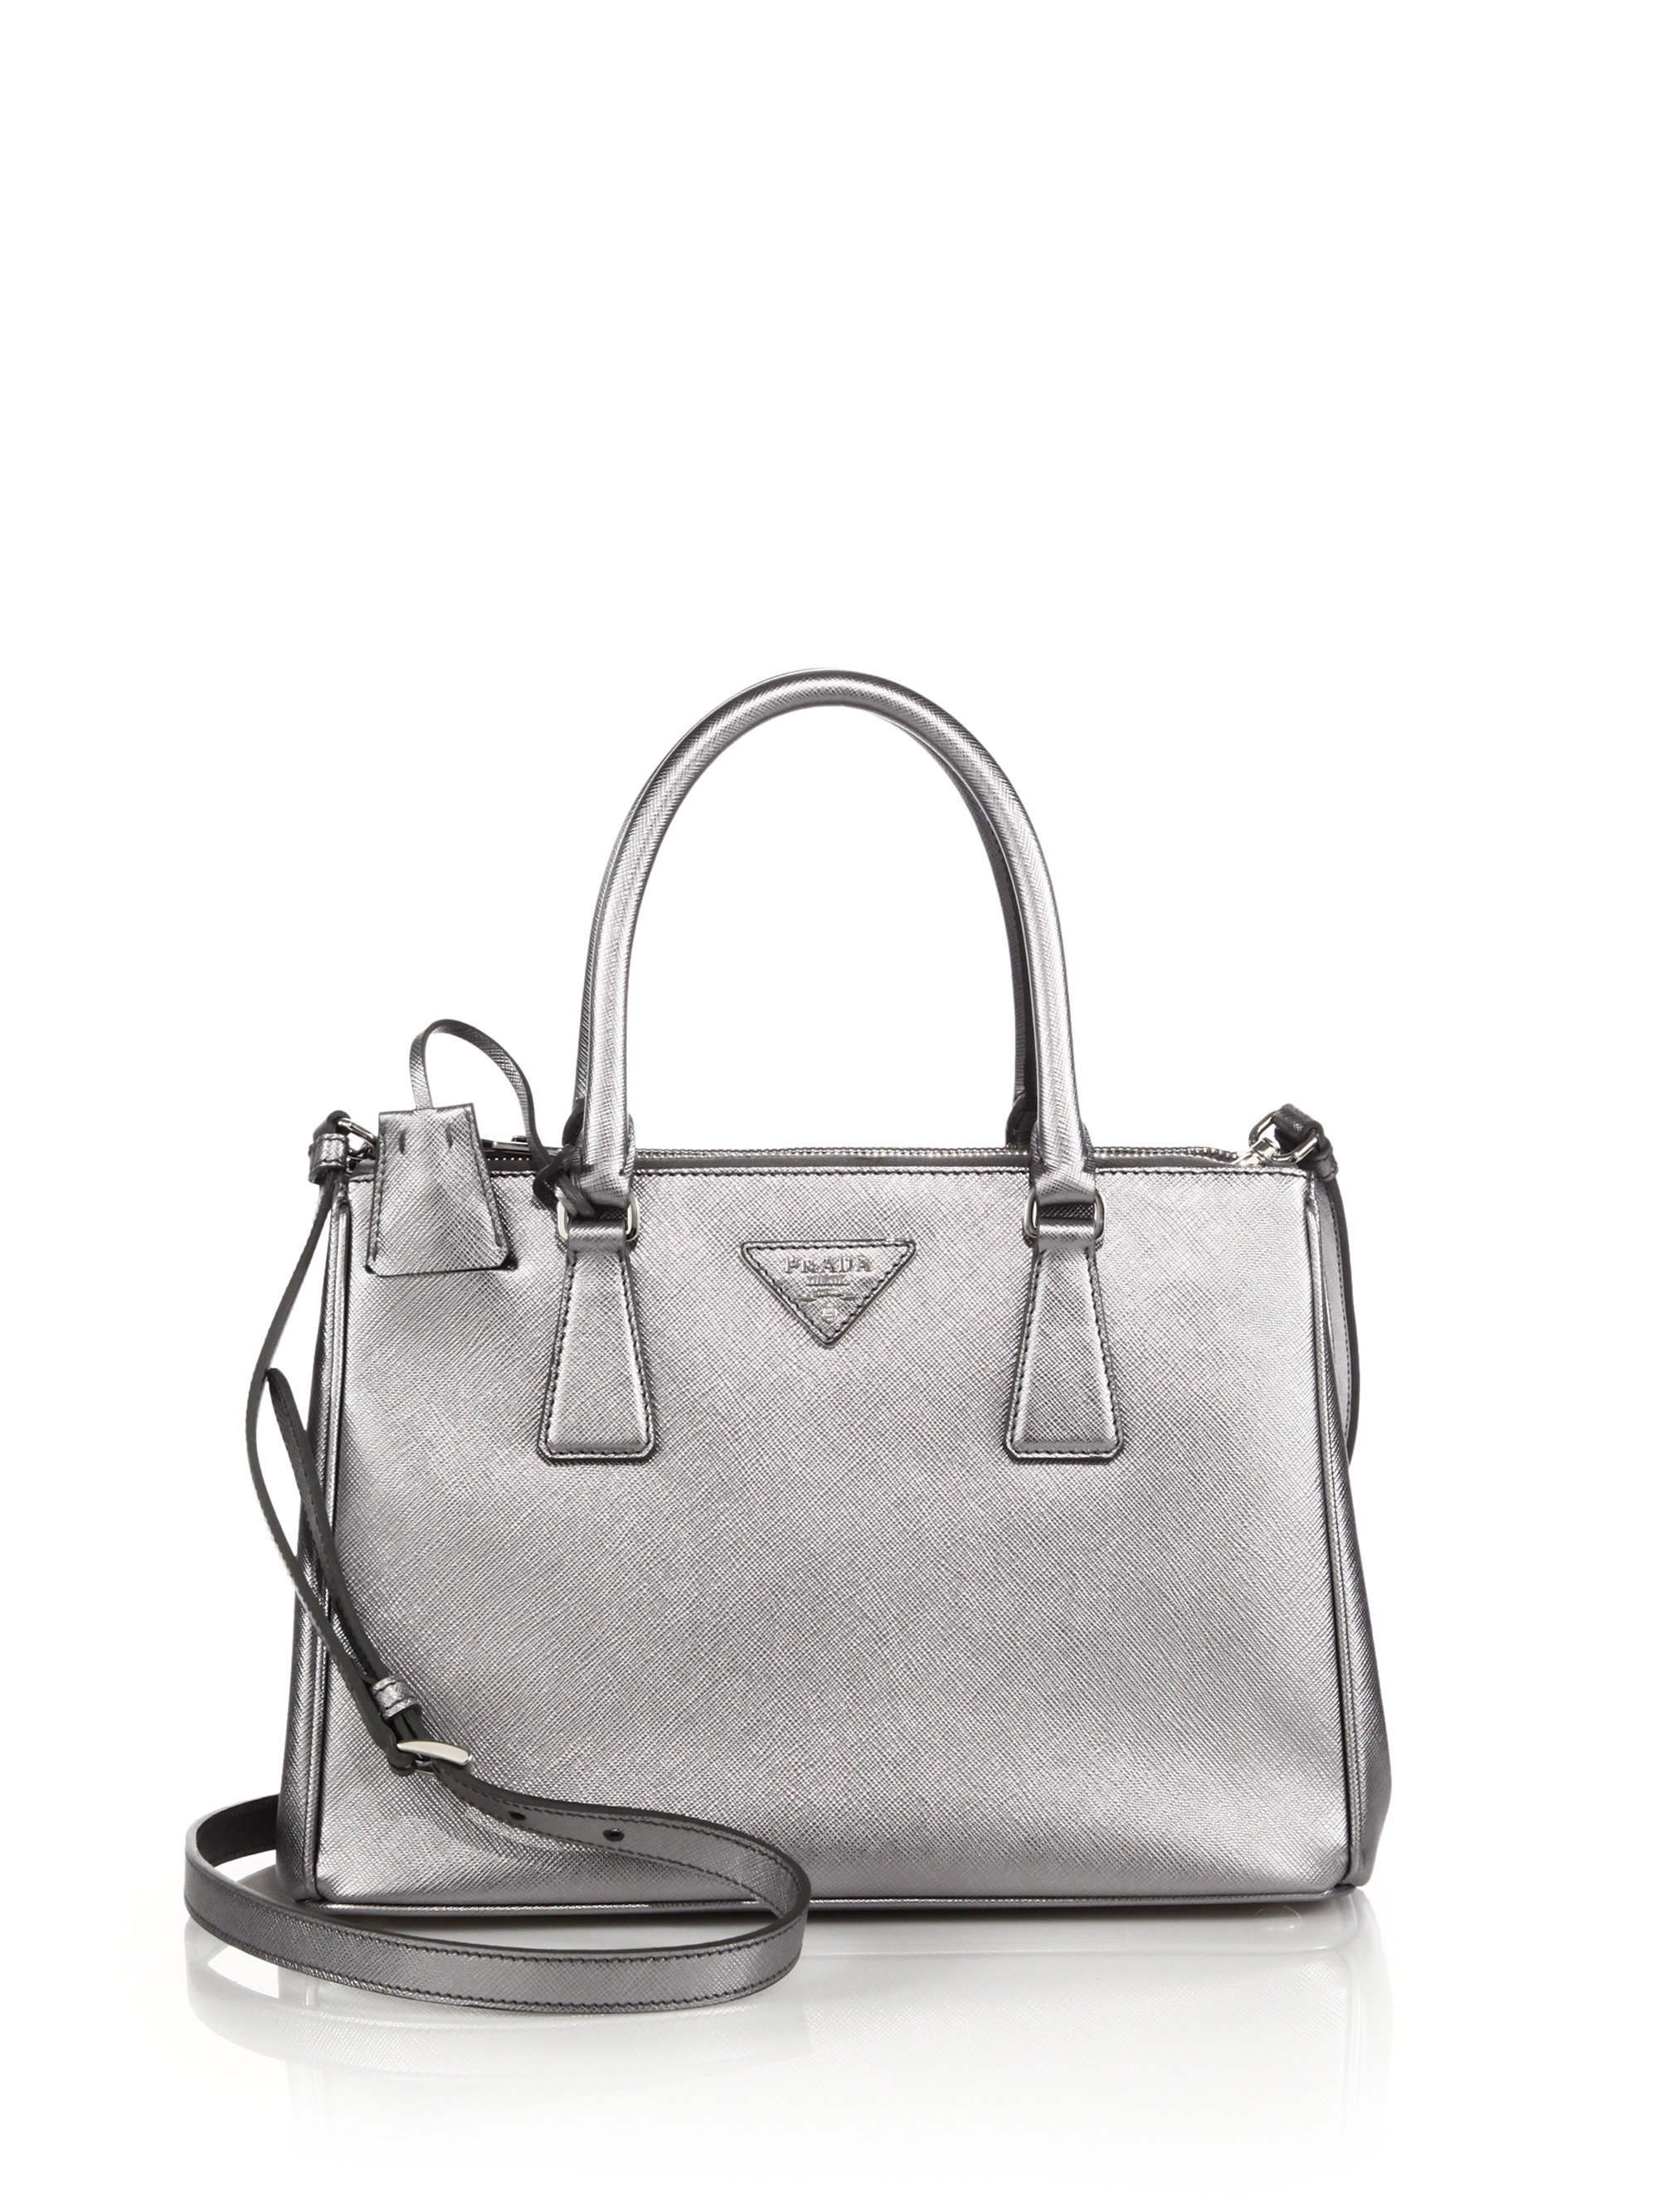 43e906672629e7 ... new style lyst prada saffiano lux small metallic double zip tote in  metallic f0ddd c0573